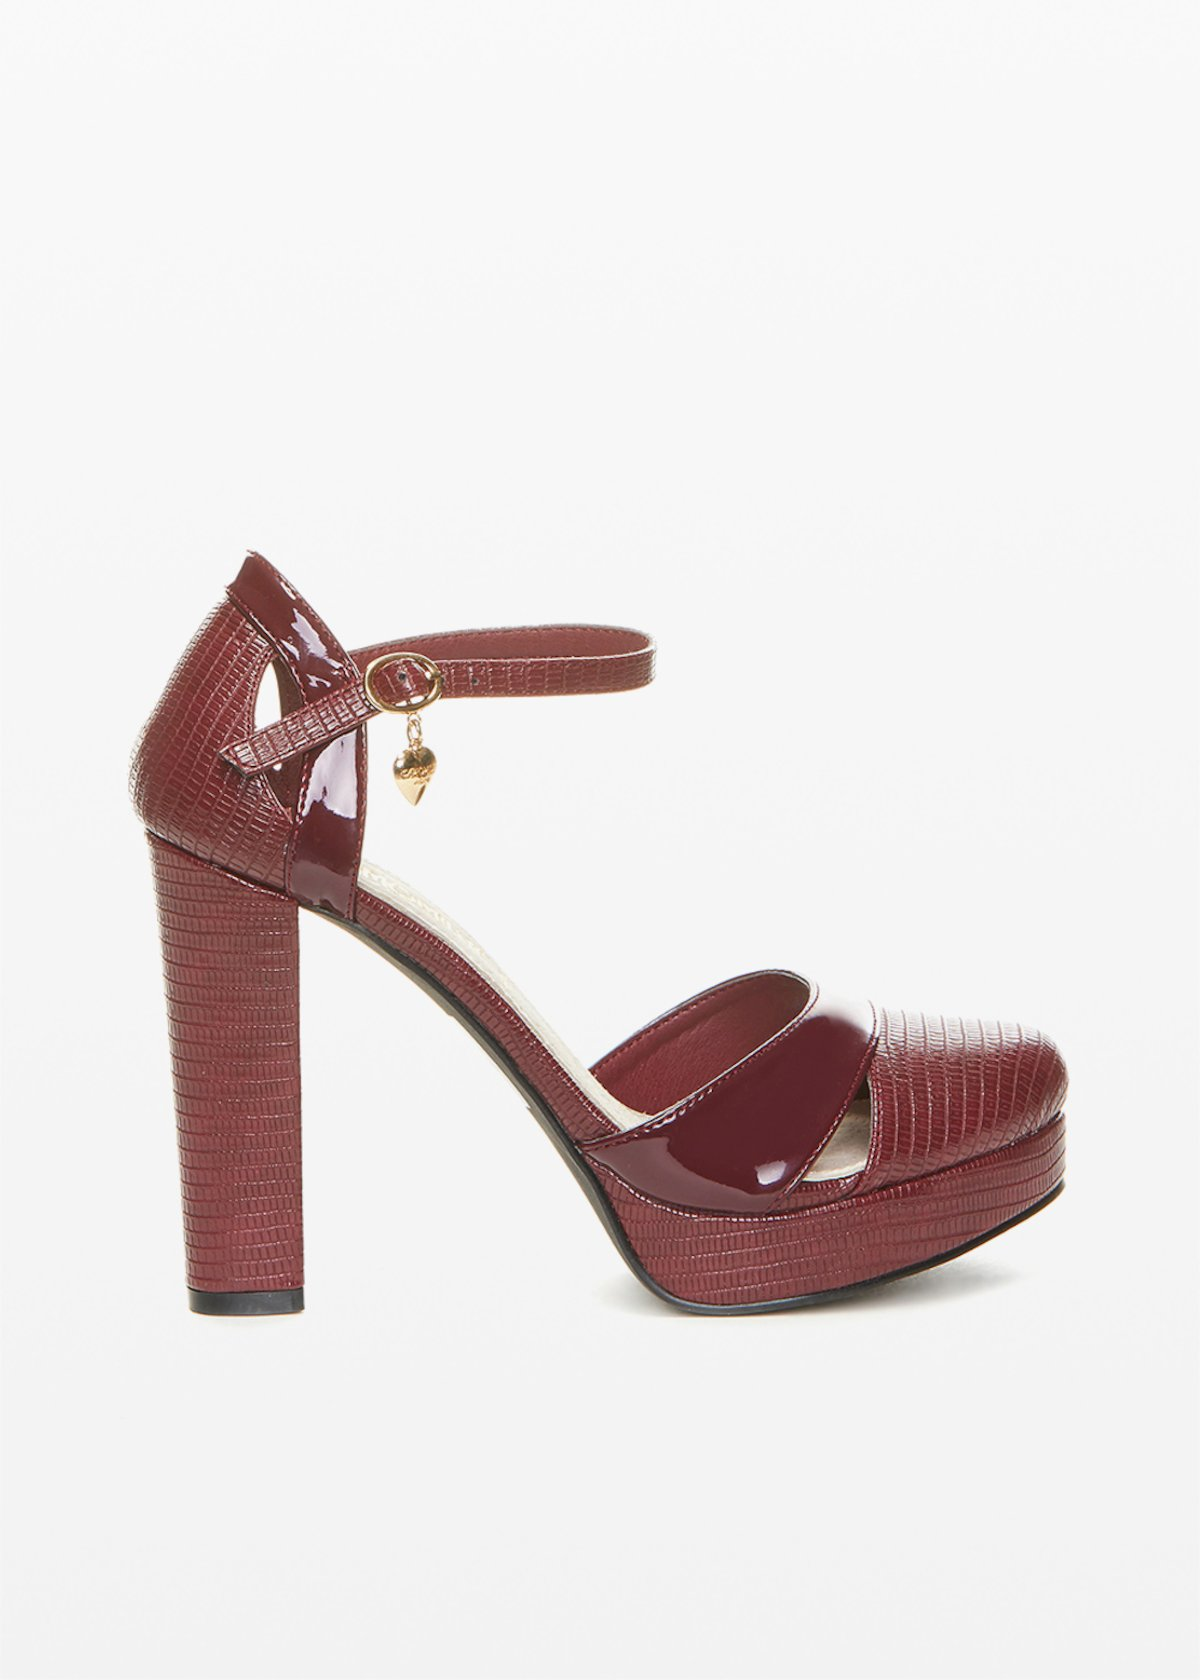 Patent Sophie sandal python effect - Morello - Woman - Category image